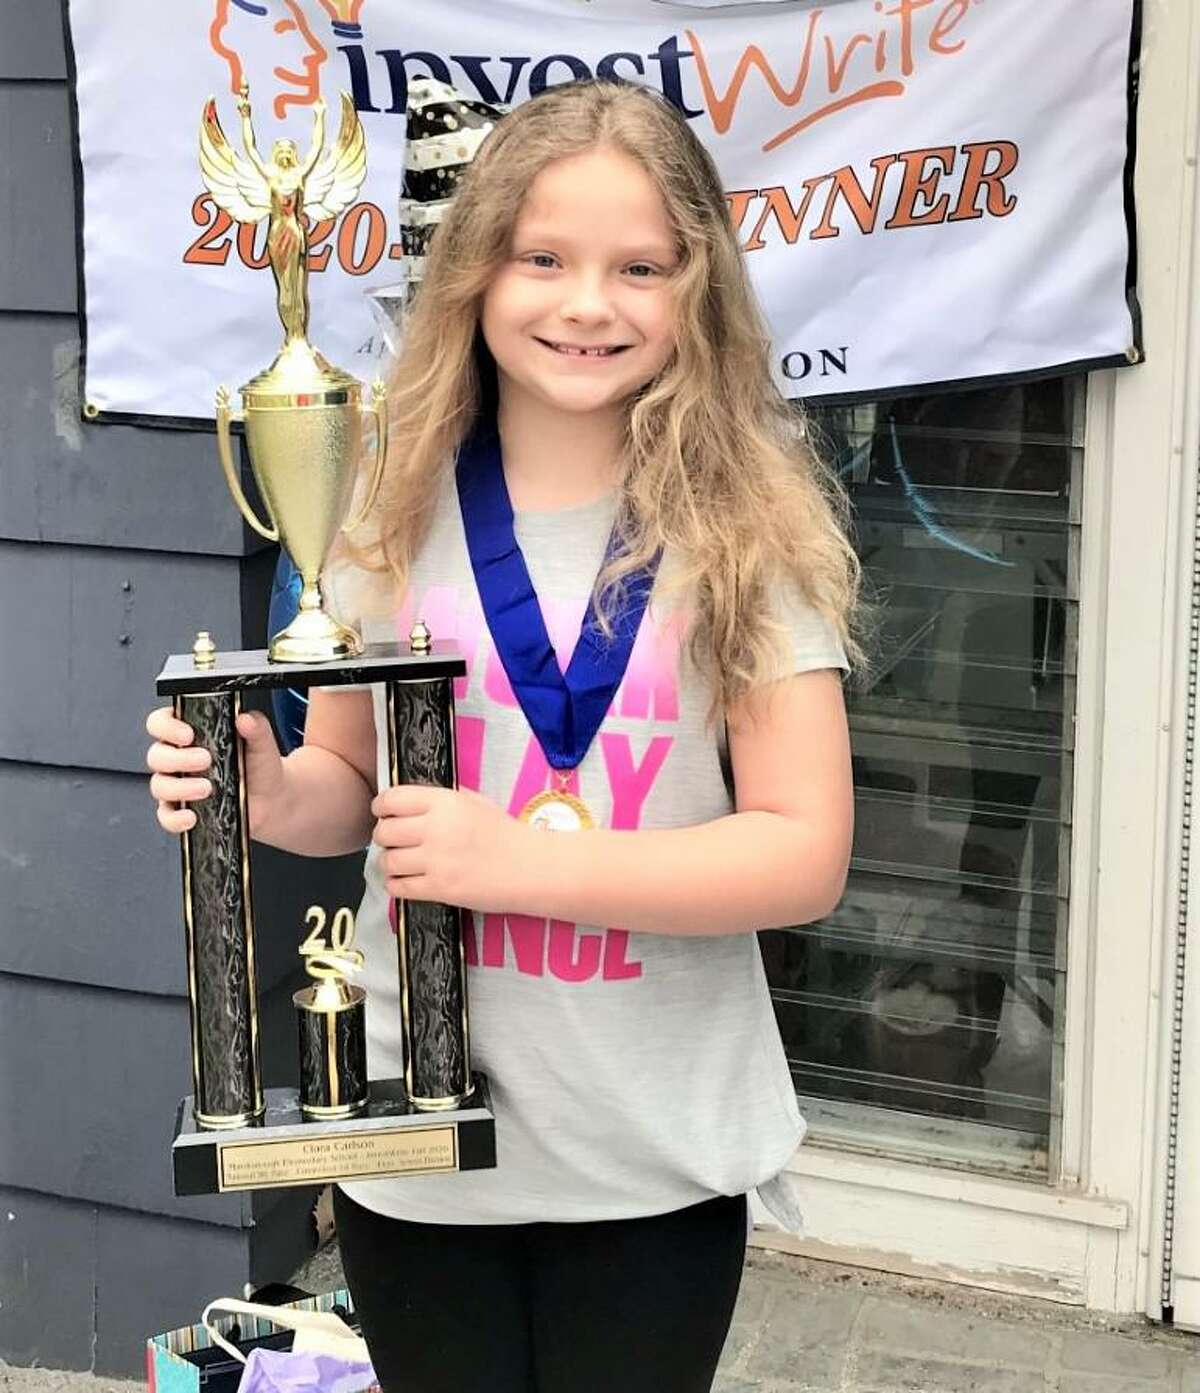 Fourth-grader Clara Carlson, a student at Macdonough Elementary School in Middletown, won the Connecticut division of the SIFMA Foundation's fall 2020 National InvestWrite Competition. She placed ninth in the nation among 452 elementary school candidates.